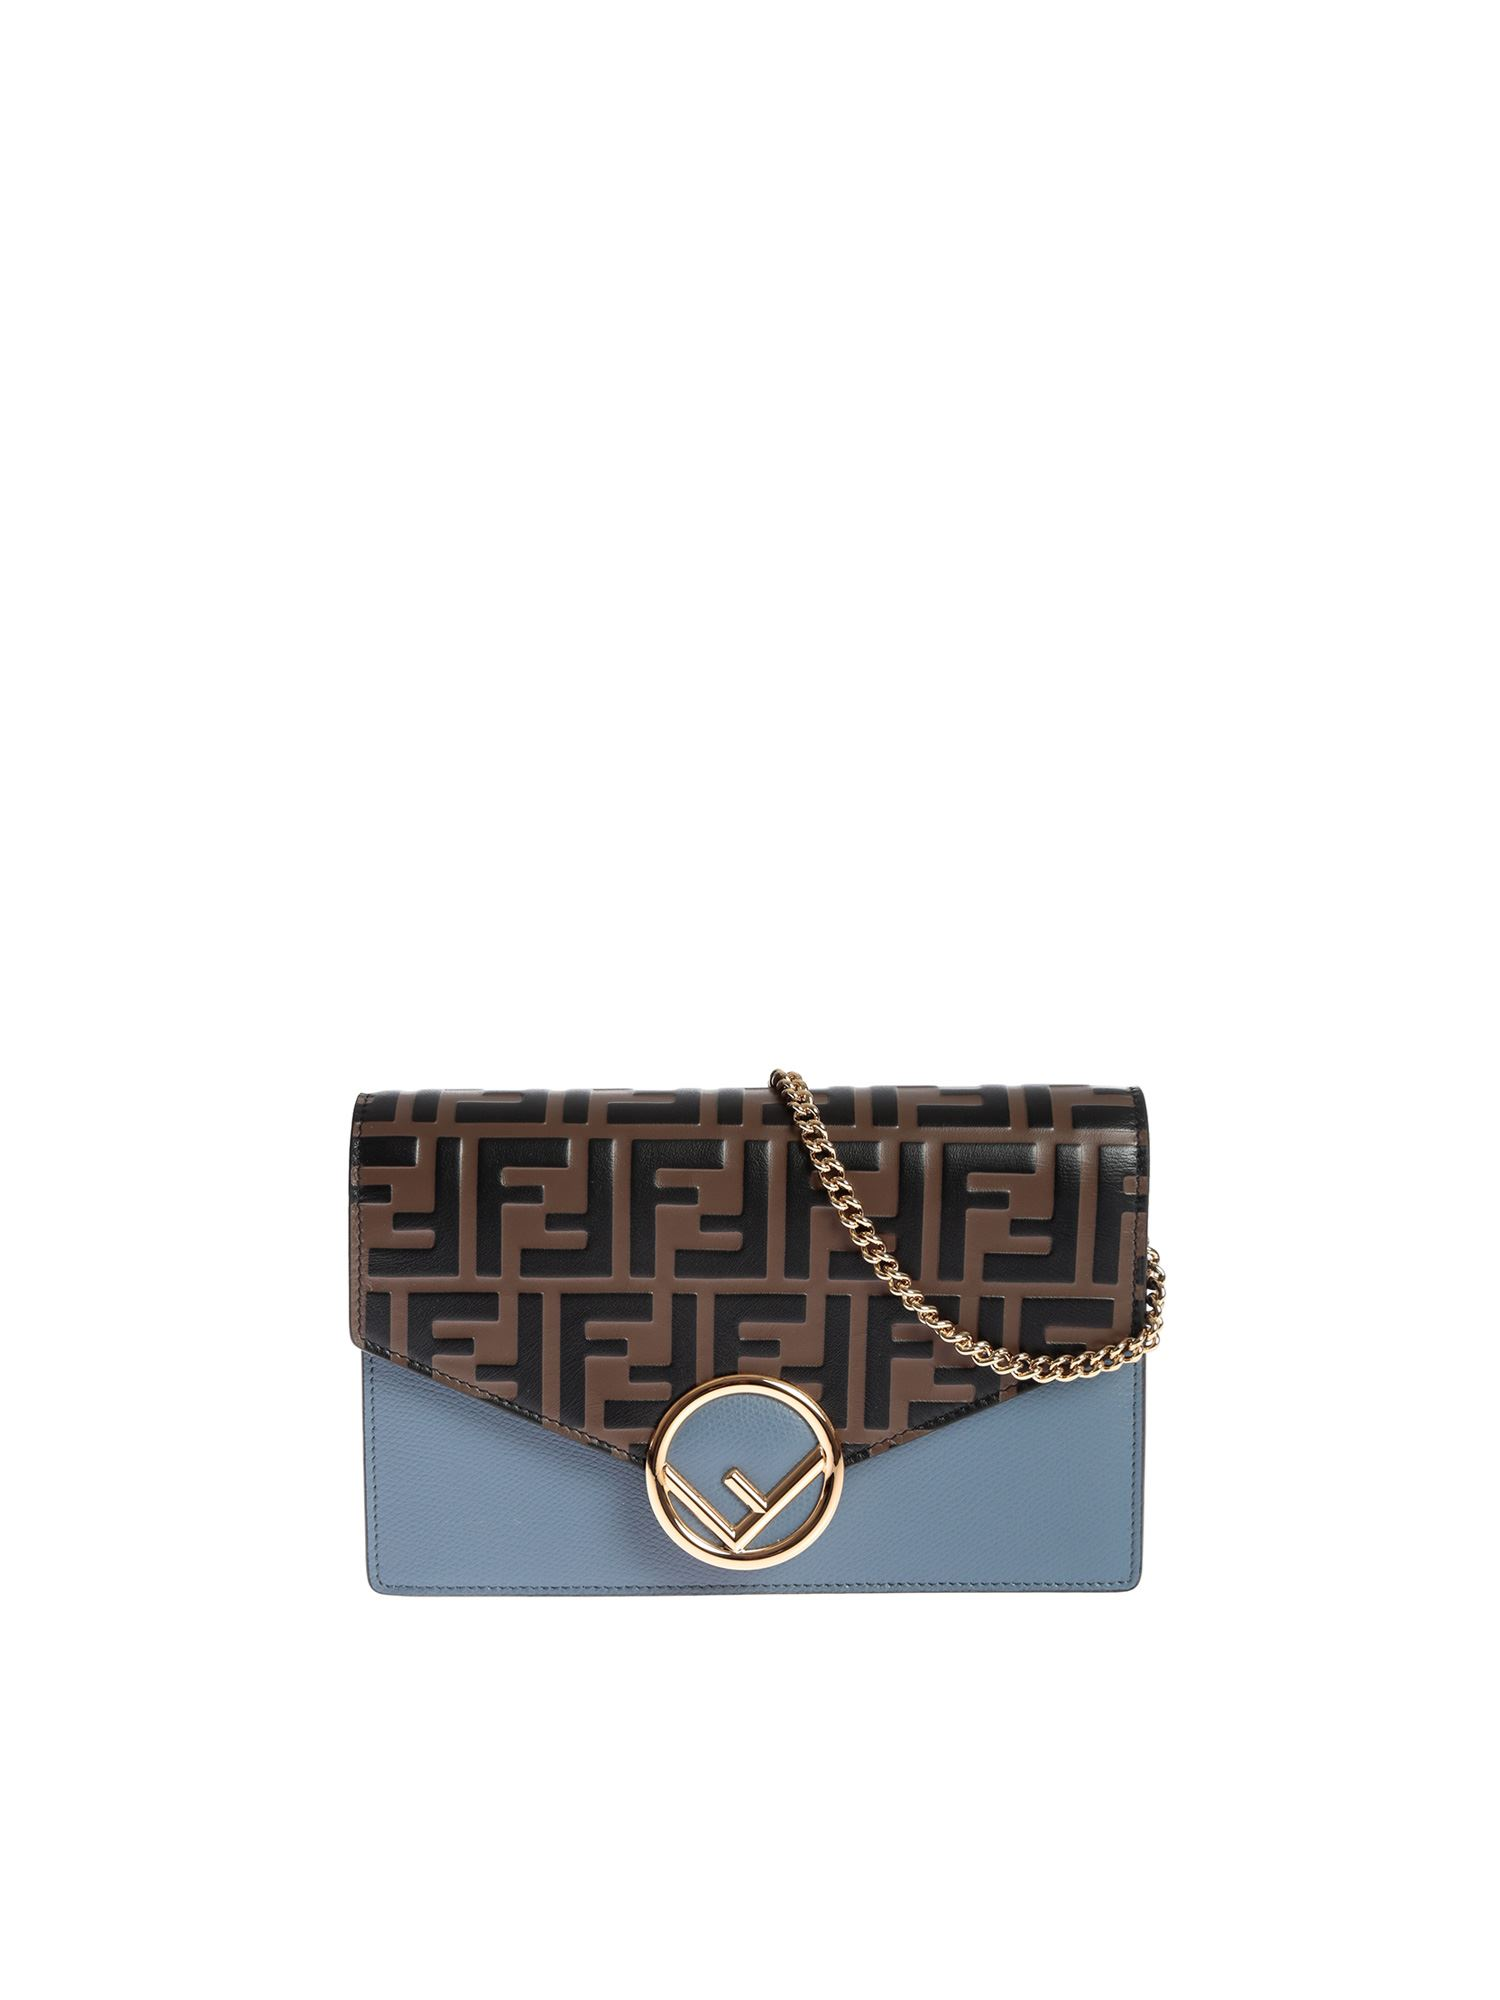 Fendi Wallet On Chain Bag In Light Blue With Brown Ff